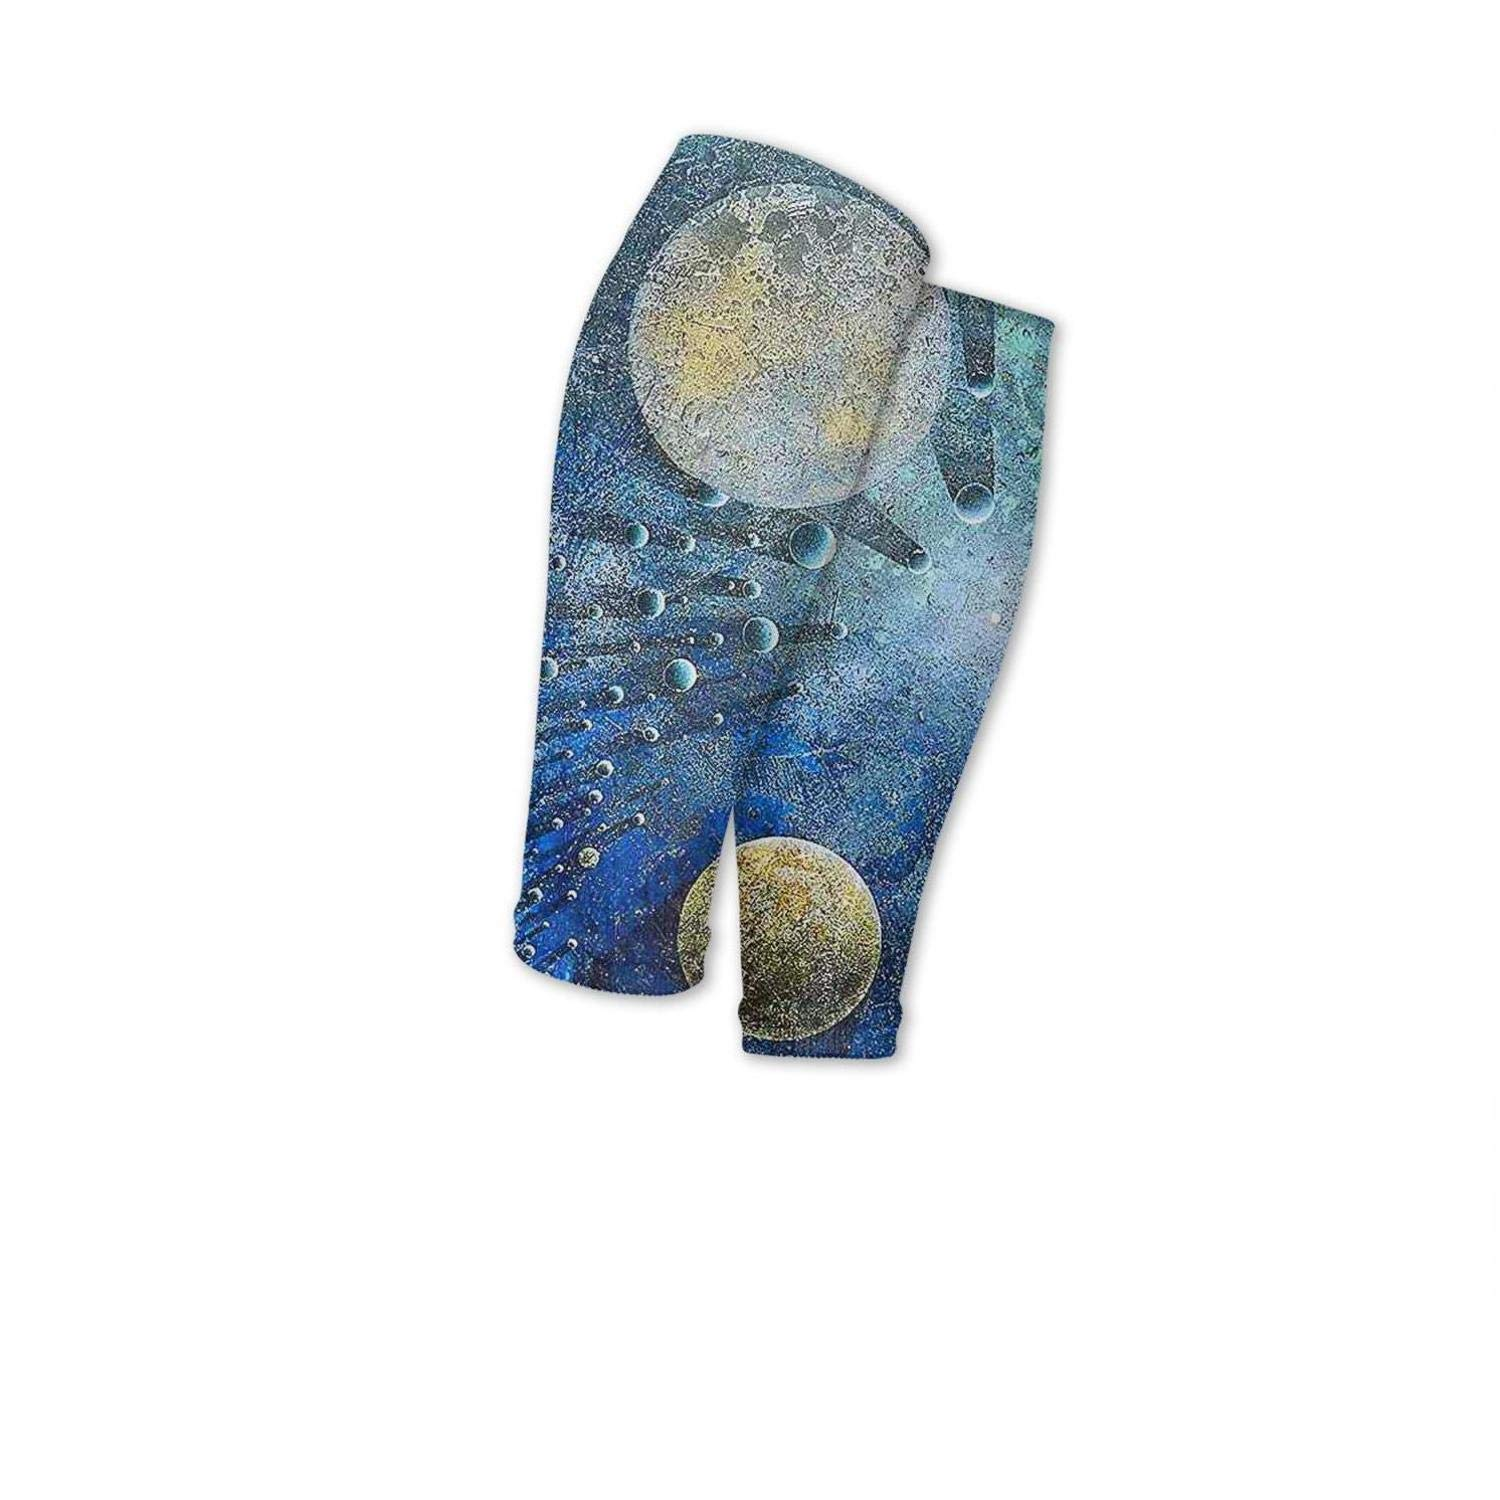 Smilelolly Colorful Space galaxy Star Nebula Calf Compression Sleeves Helps Faster Recovery Leg Sleeves for Men Women